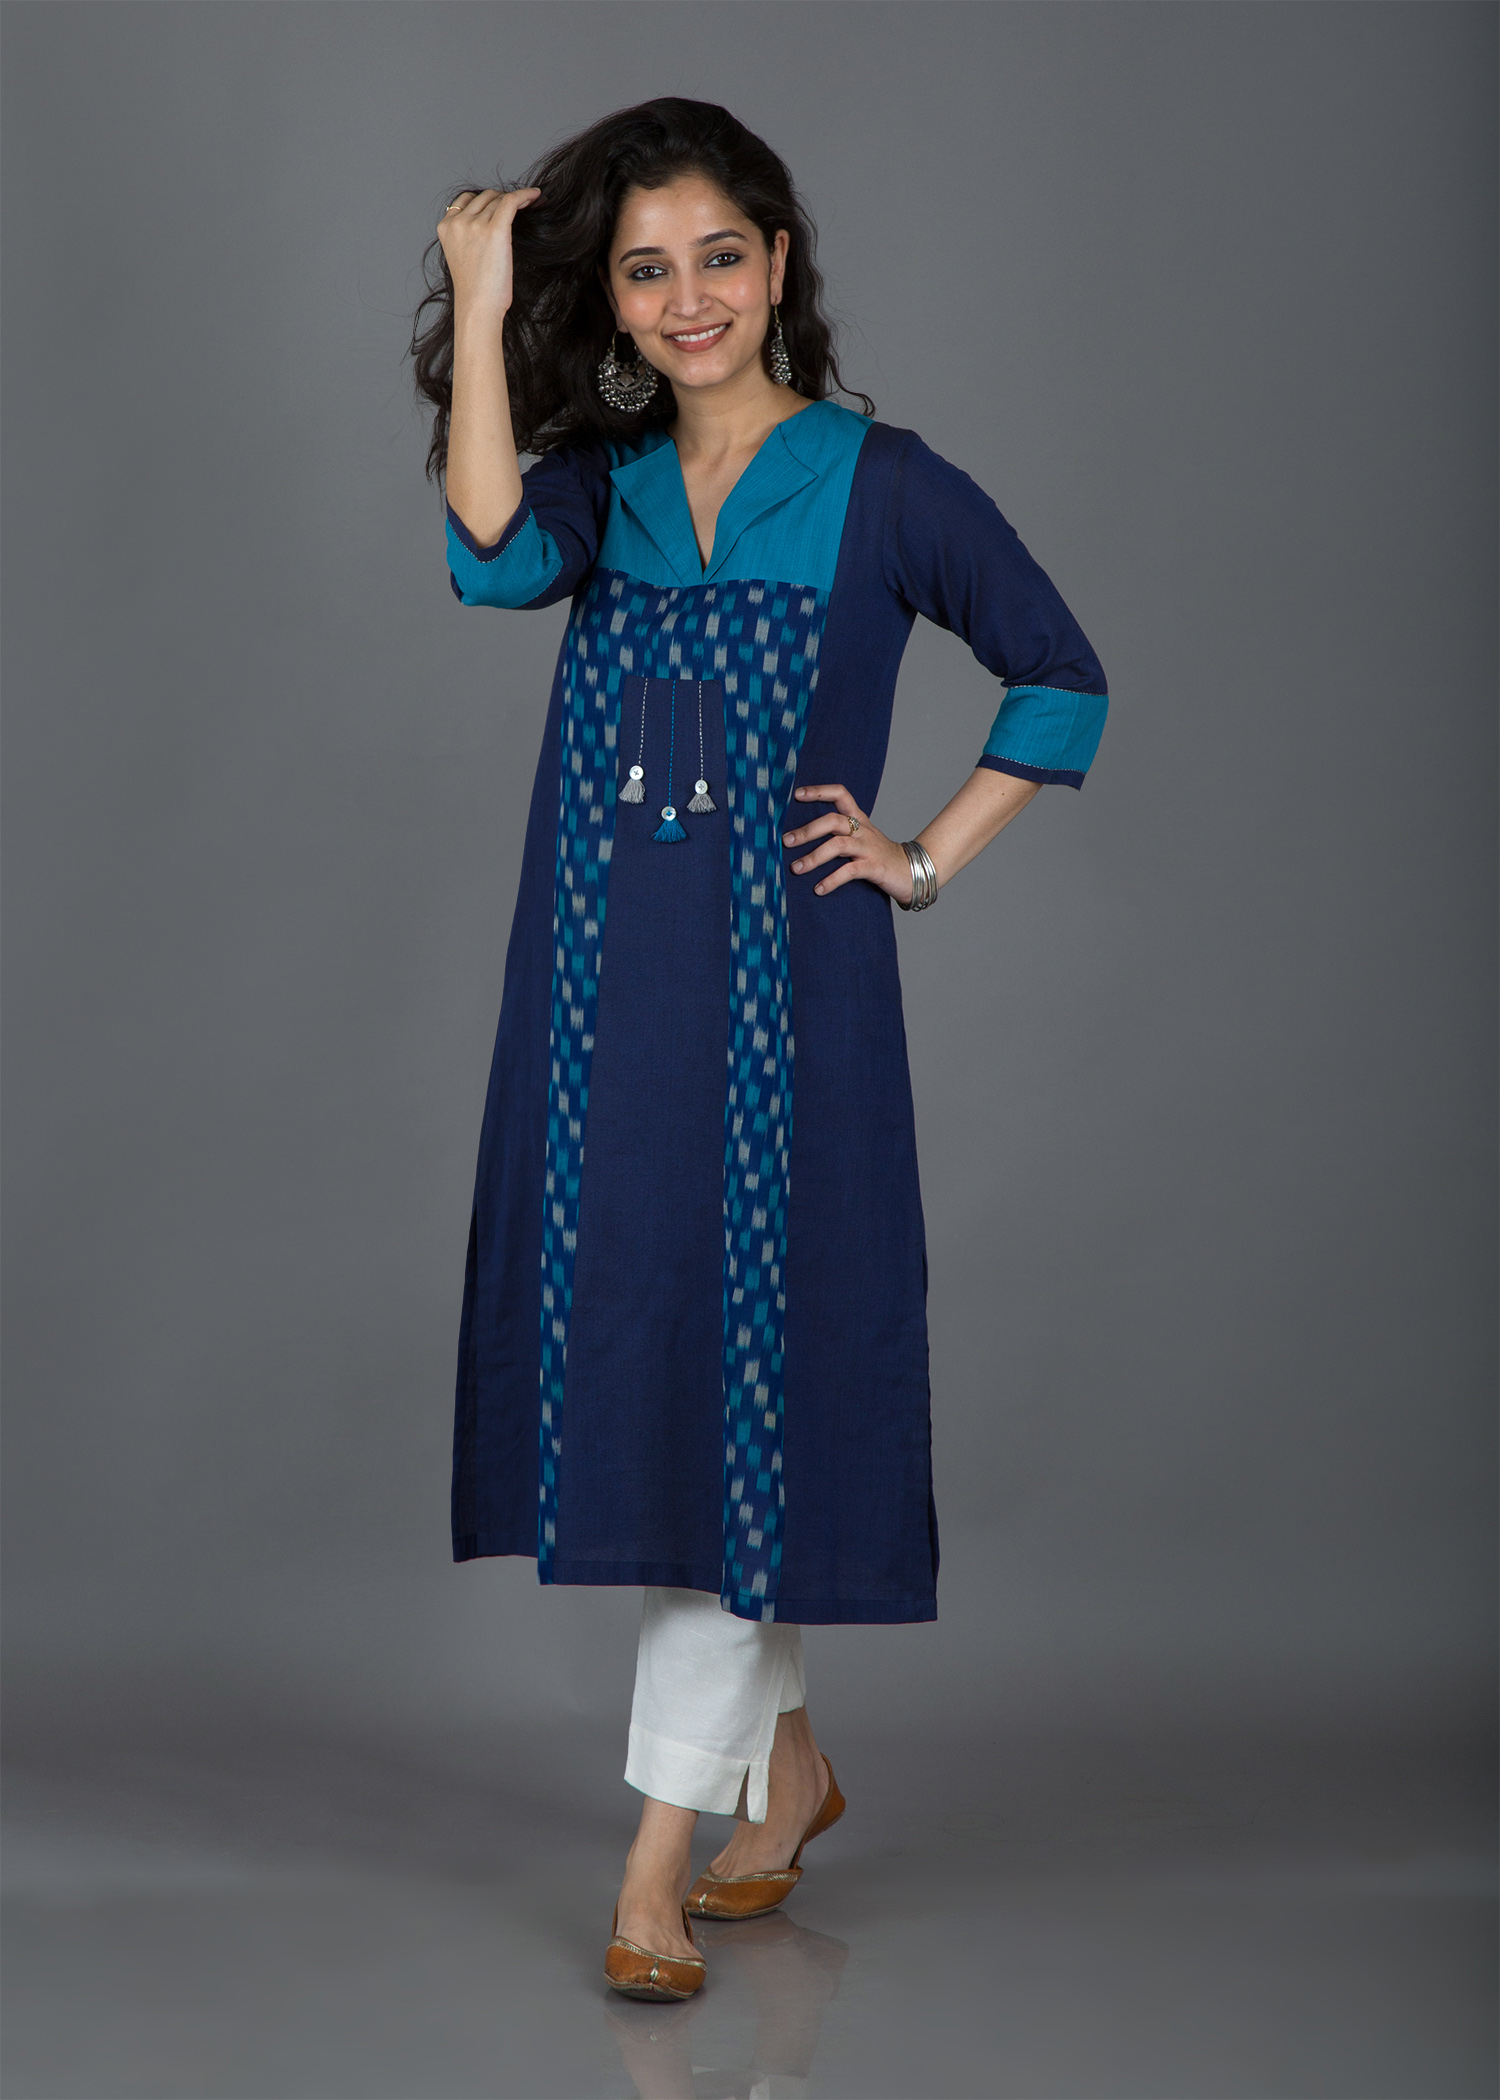 catalog/Winter 2018/blue kurta 1.jpg